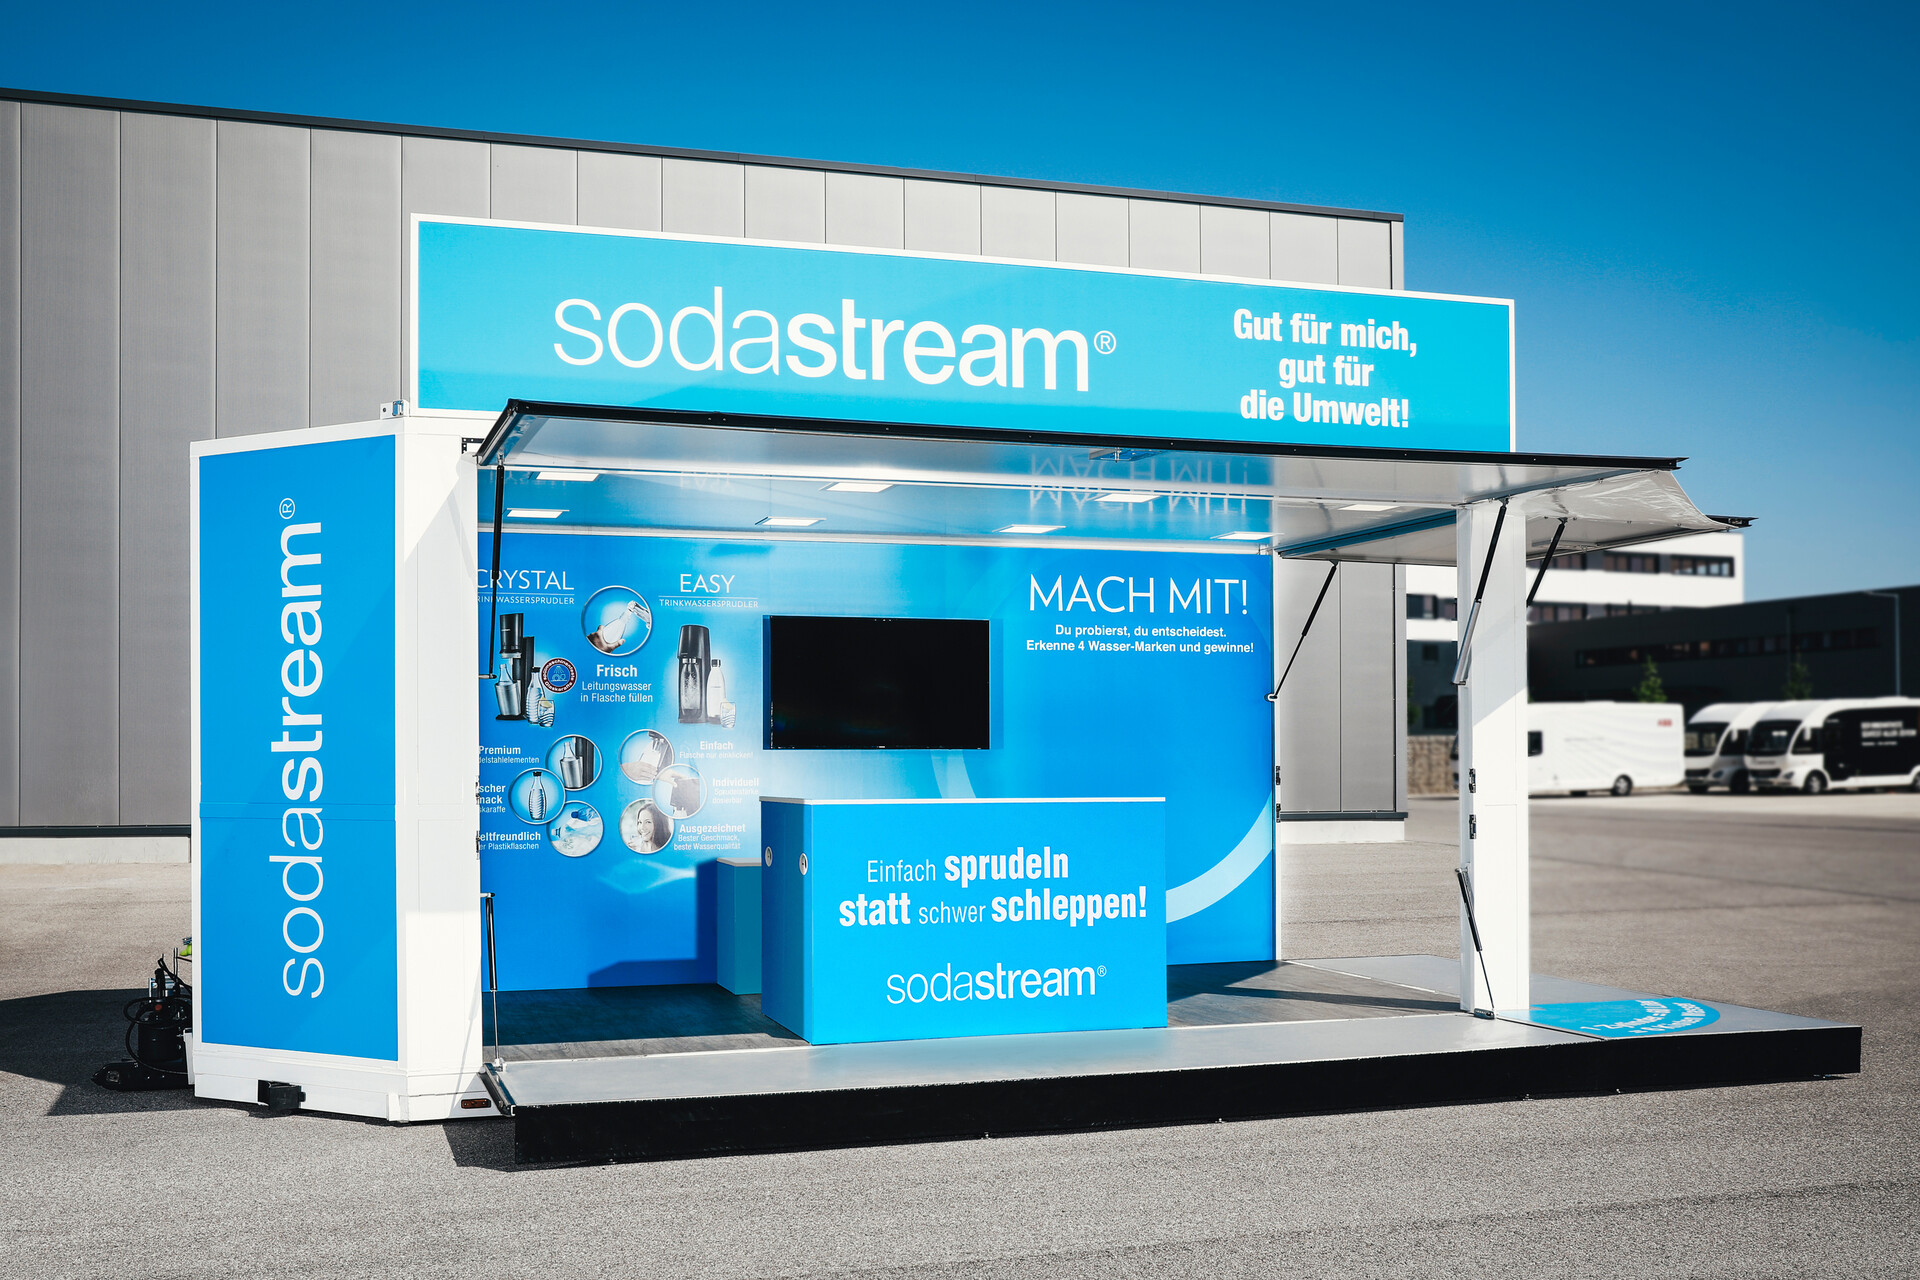 Sodastream Roadshow